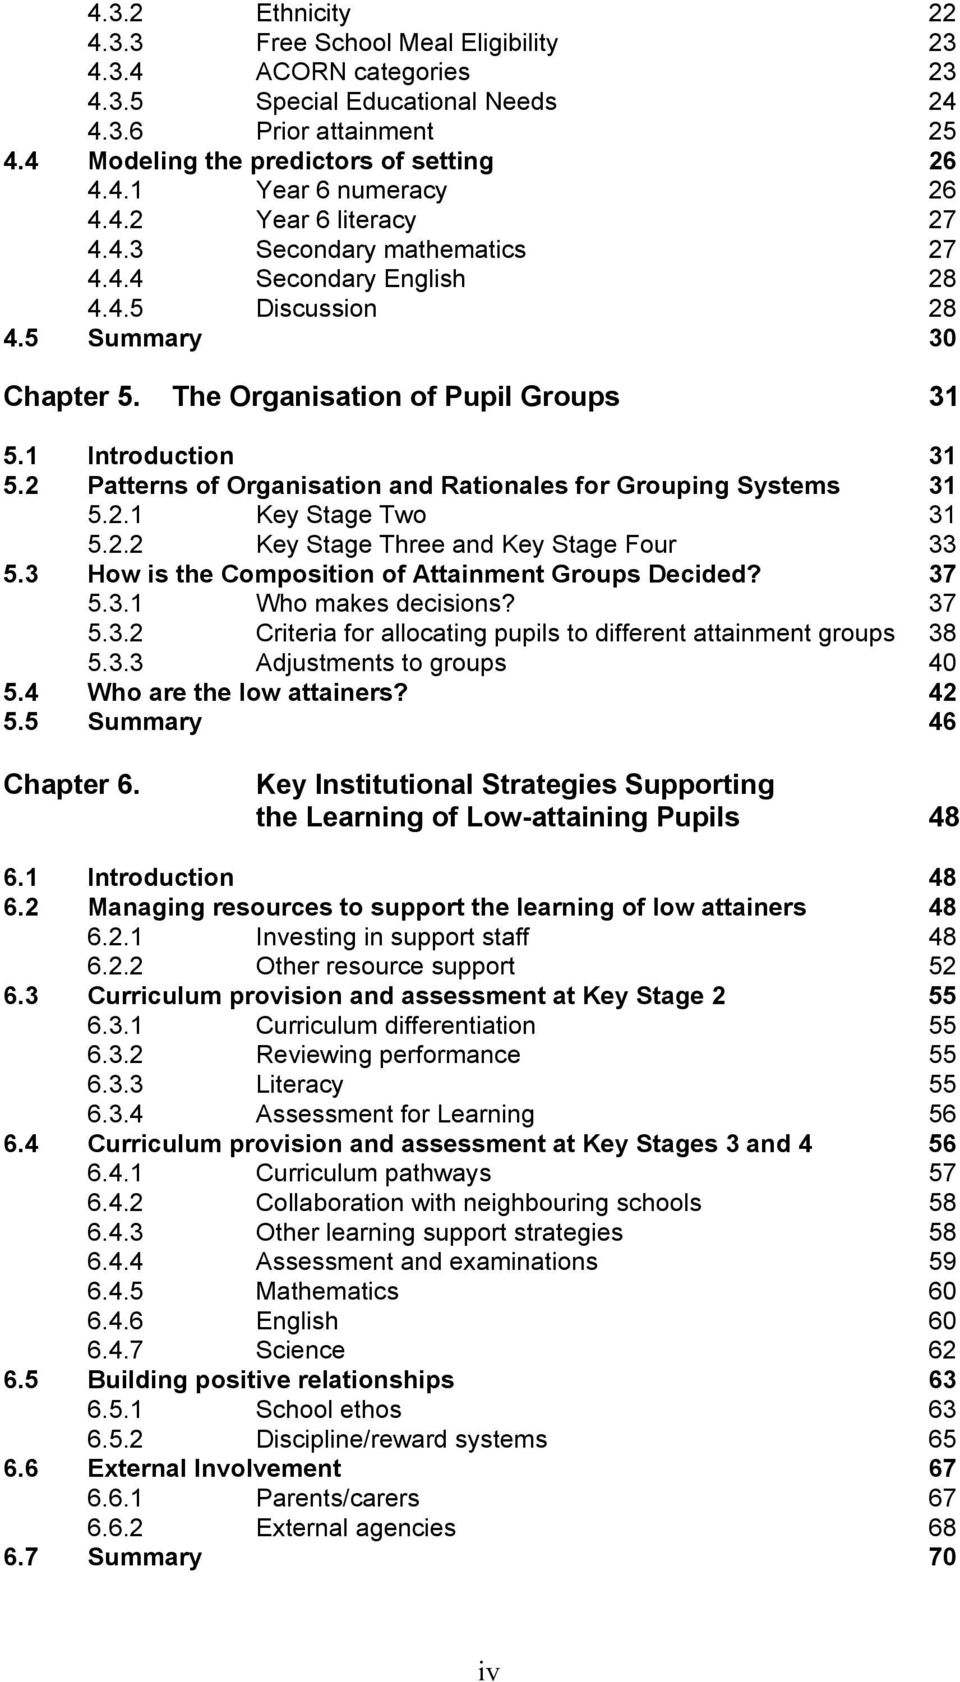 2 Patterns of Organisation and Rationales for Grouping Systems 31 5.2.1 Key Stage Two 31 5.2.2 Key Stage Three and Key Stage Four 33 5.3 How is the Composition of Attainment Groups Decided? 37 5.3.1 Who makes decisions?